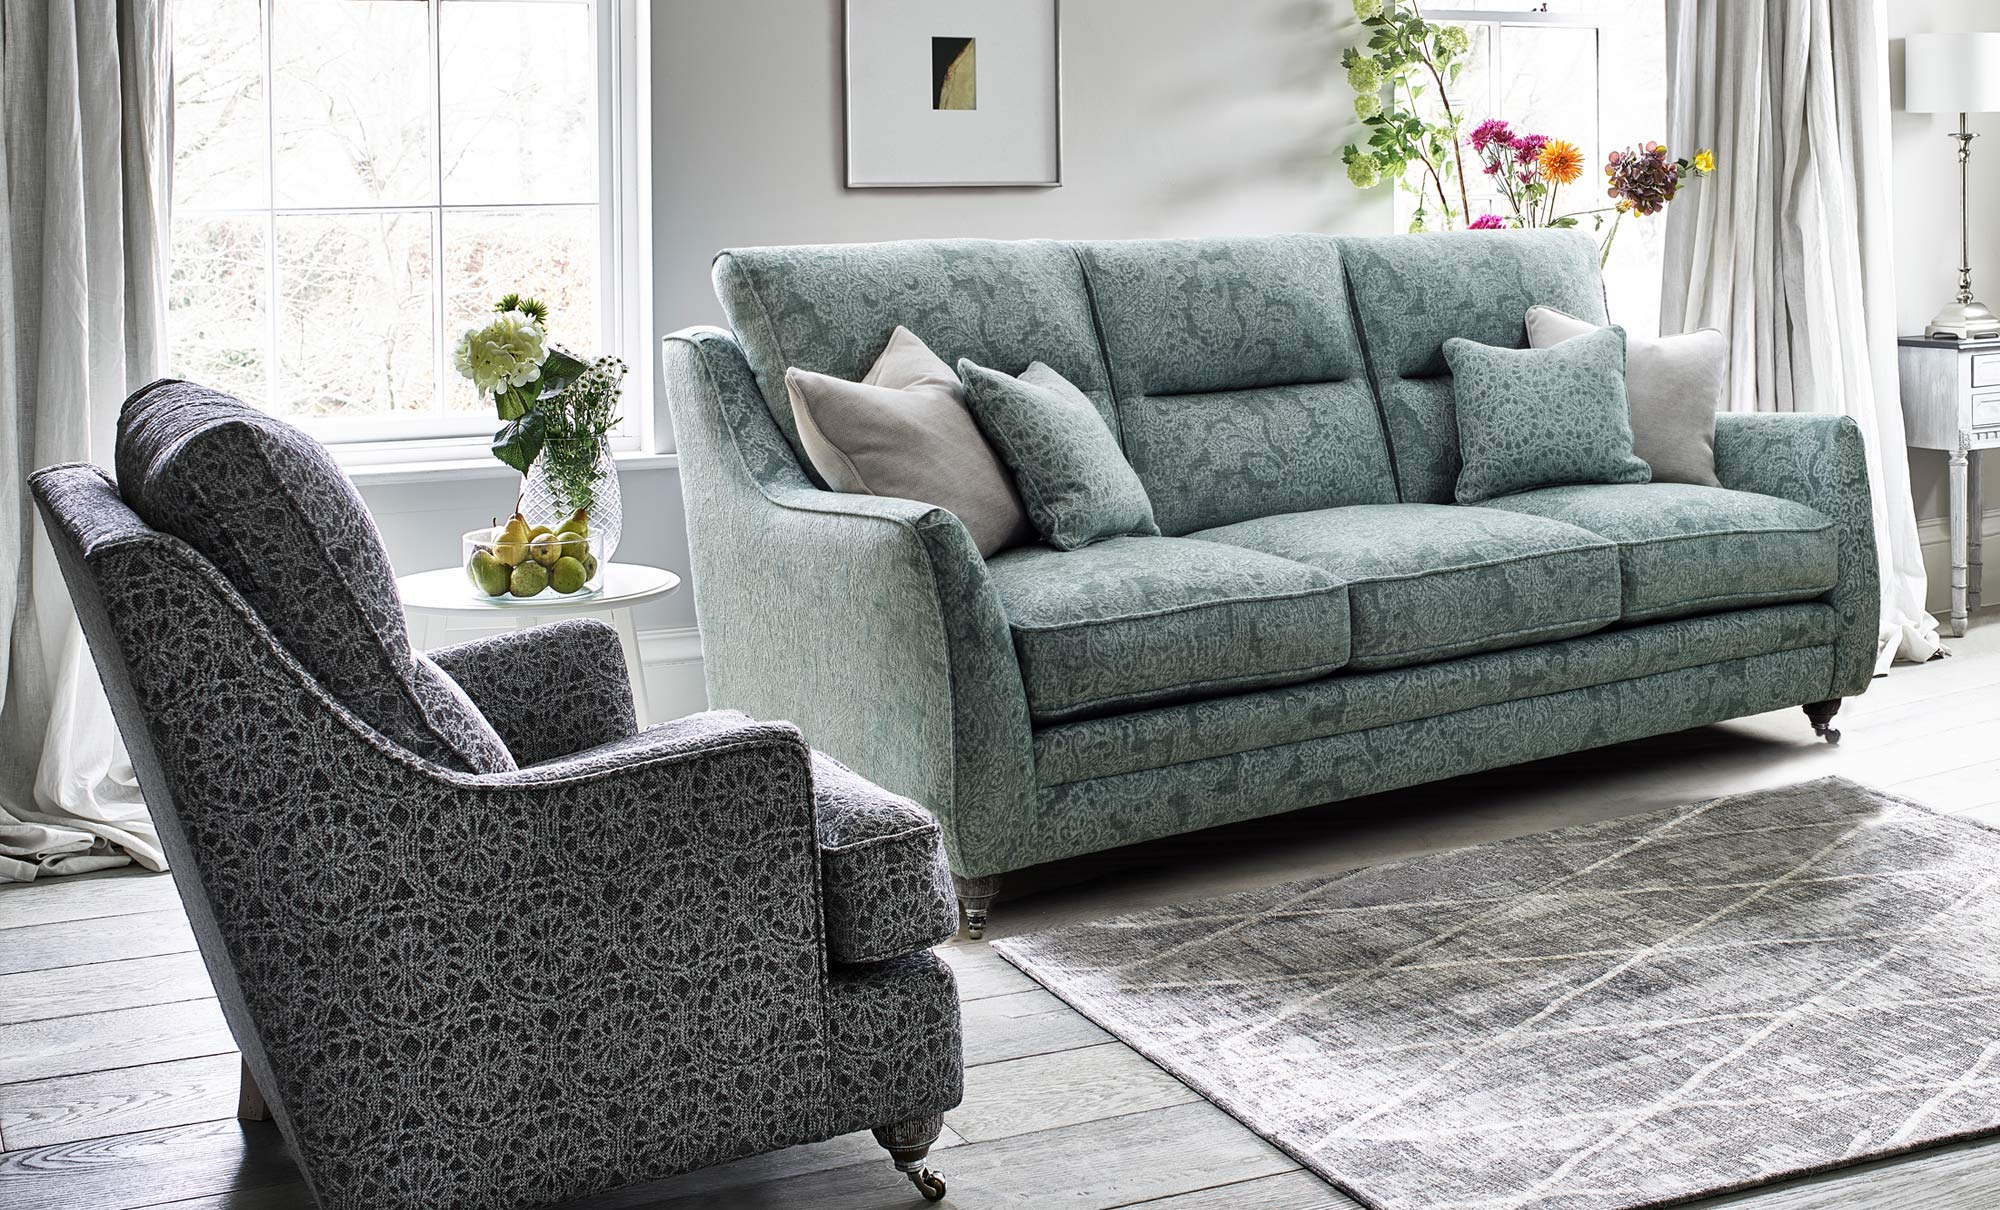 Dfs Sofa Legs Florence Sofa Workshop On Sale At Dfs Furnitureonsale Legs